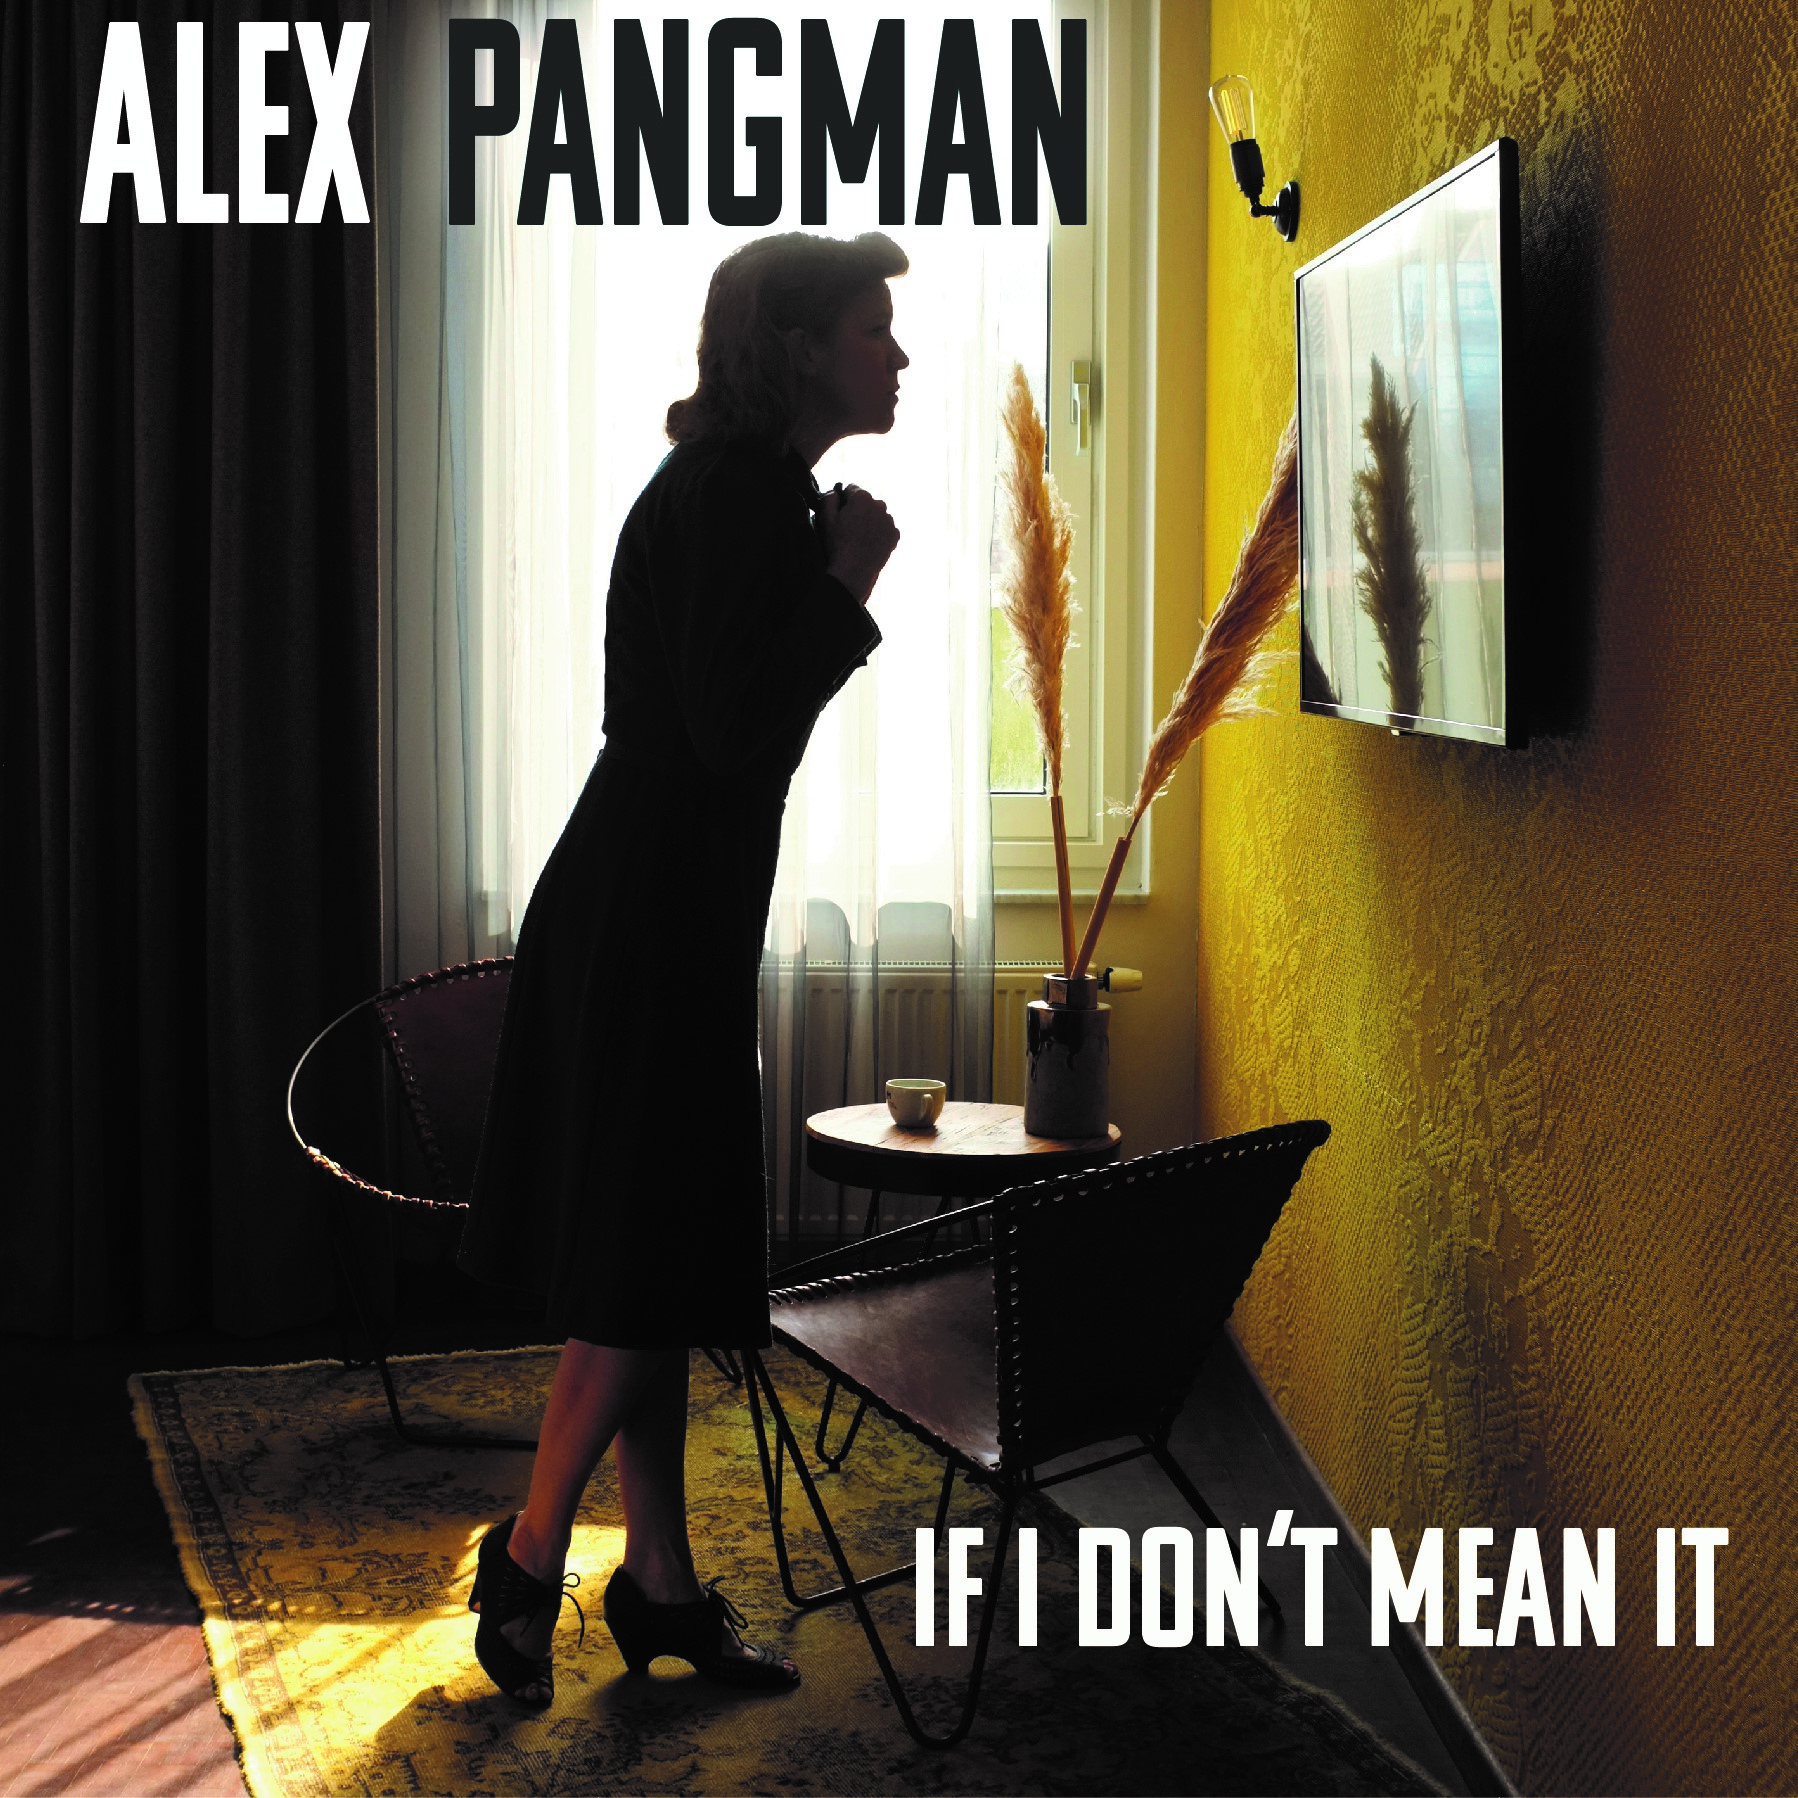 Cover Album - If I Don't Mean It (Disponible en plateformes numériques seulement/Available on Digital Services Only)